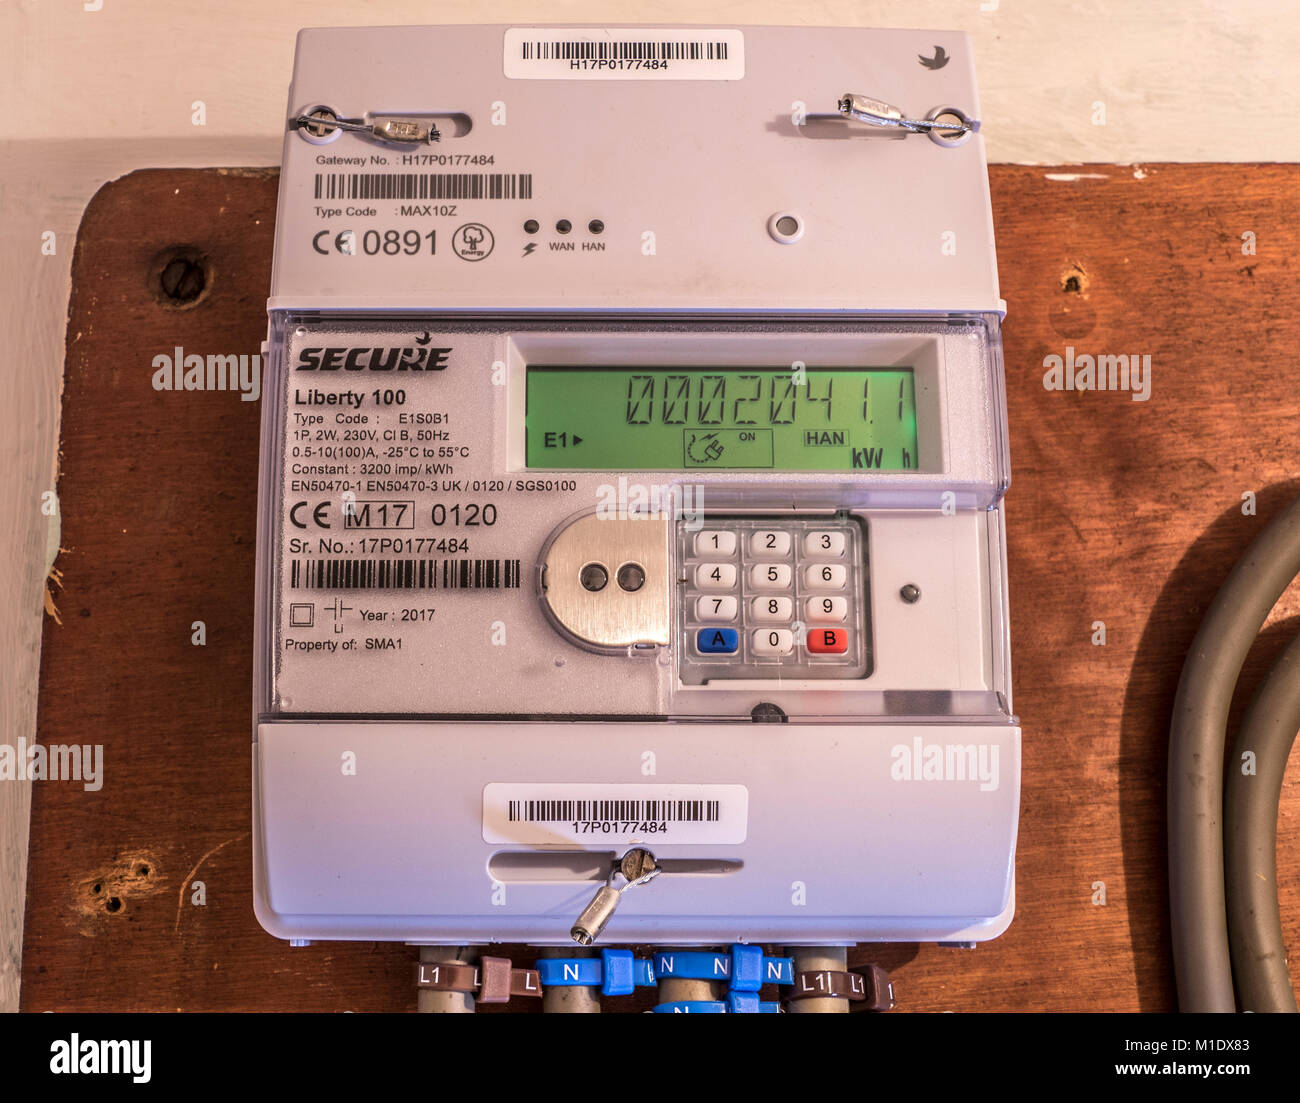 Secure Liberty 100 smart electricity meter, measuring consumption and relaying the kWh reading via the display panel. - Stock Image